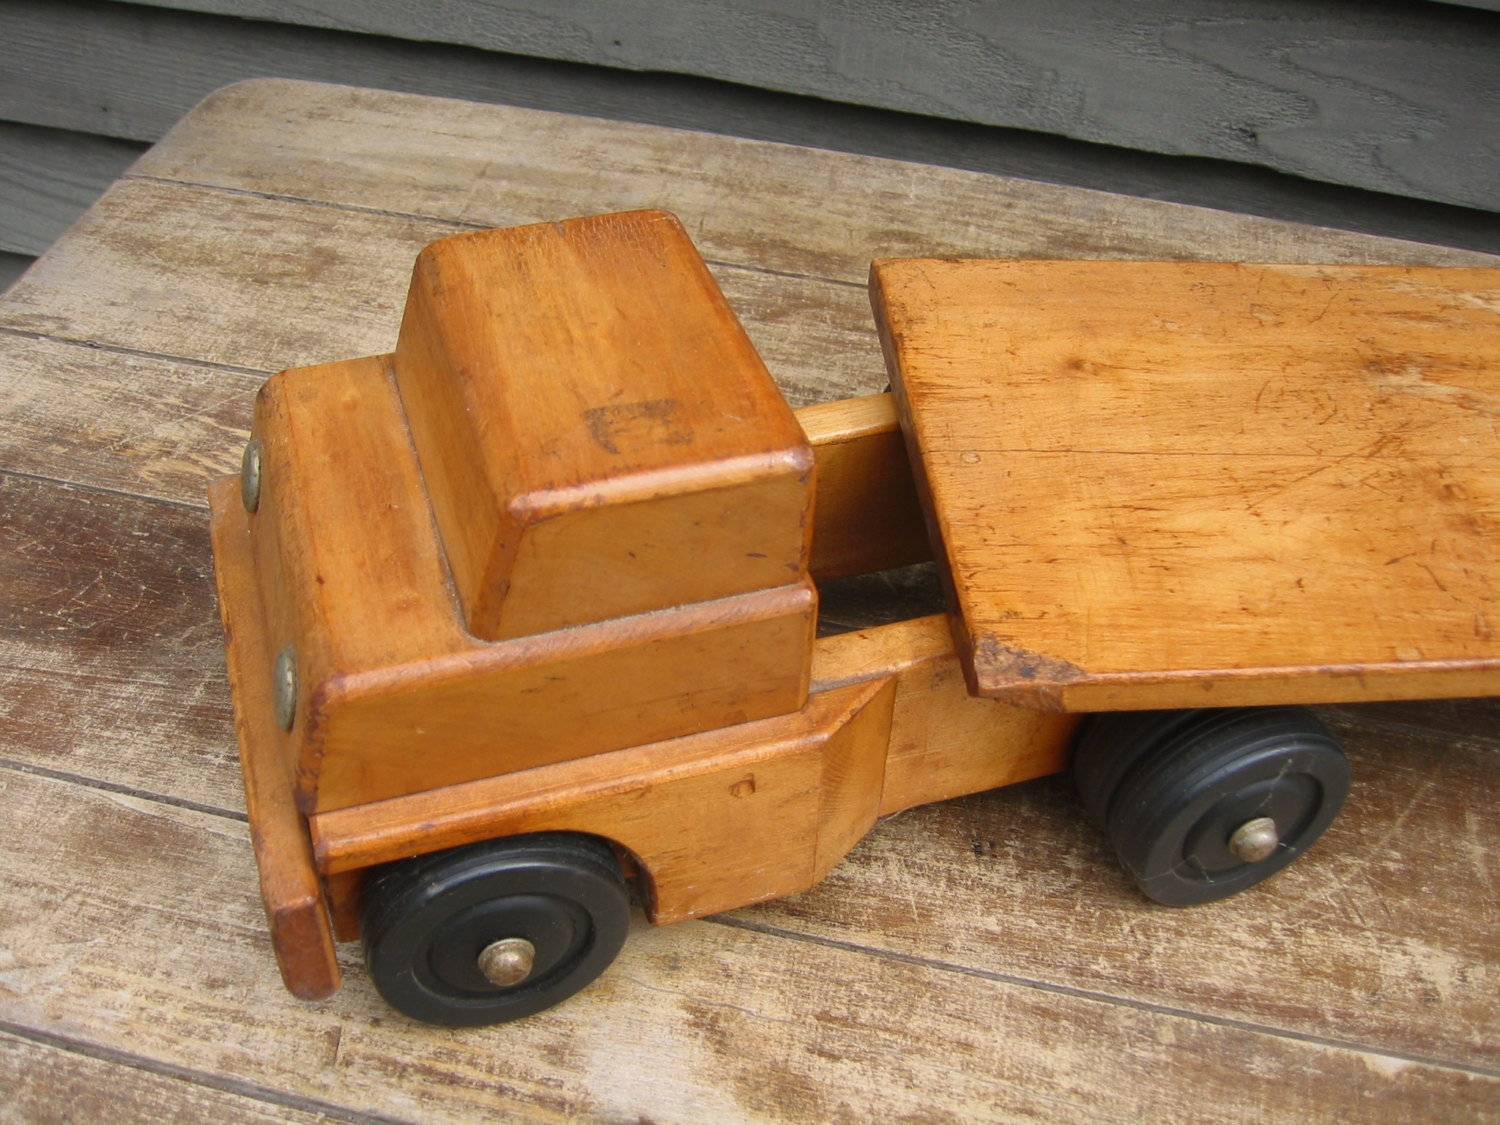 Marvelous photograph of Vintage Two Piece Wooden Flat Bed Toy Truck by HighFarmAttic with #A26629 color and 1500x1125 pixels